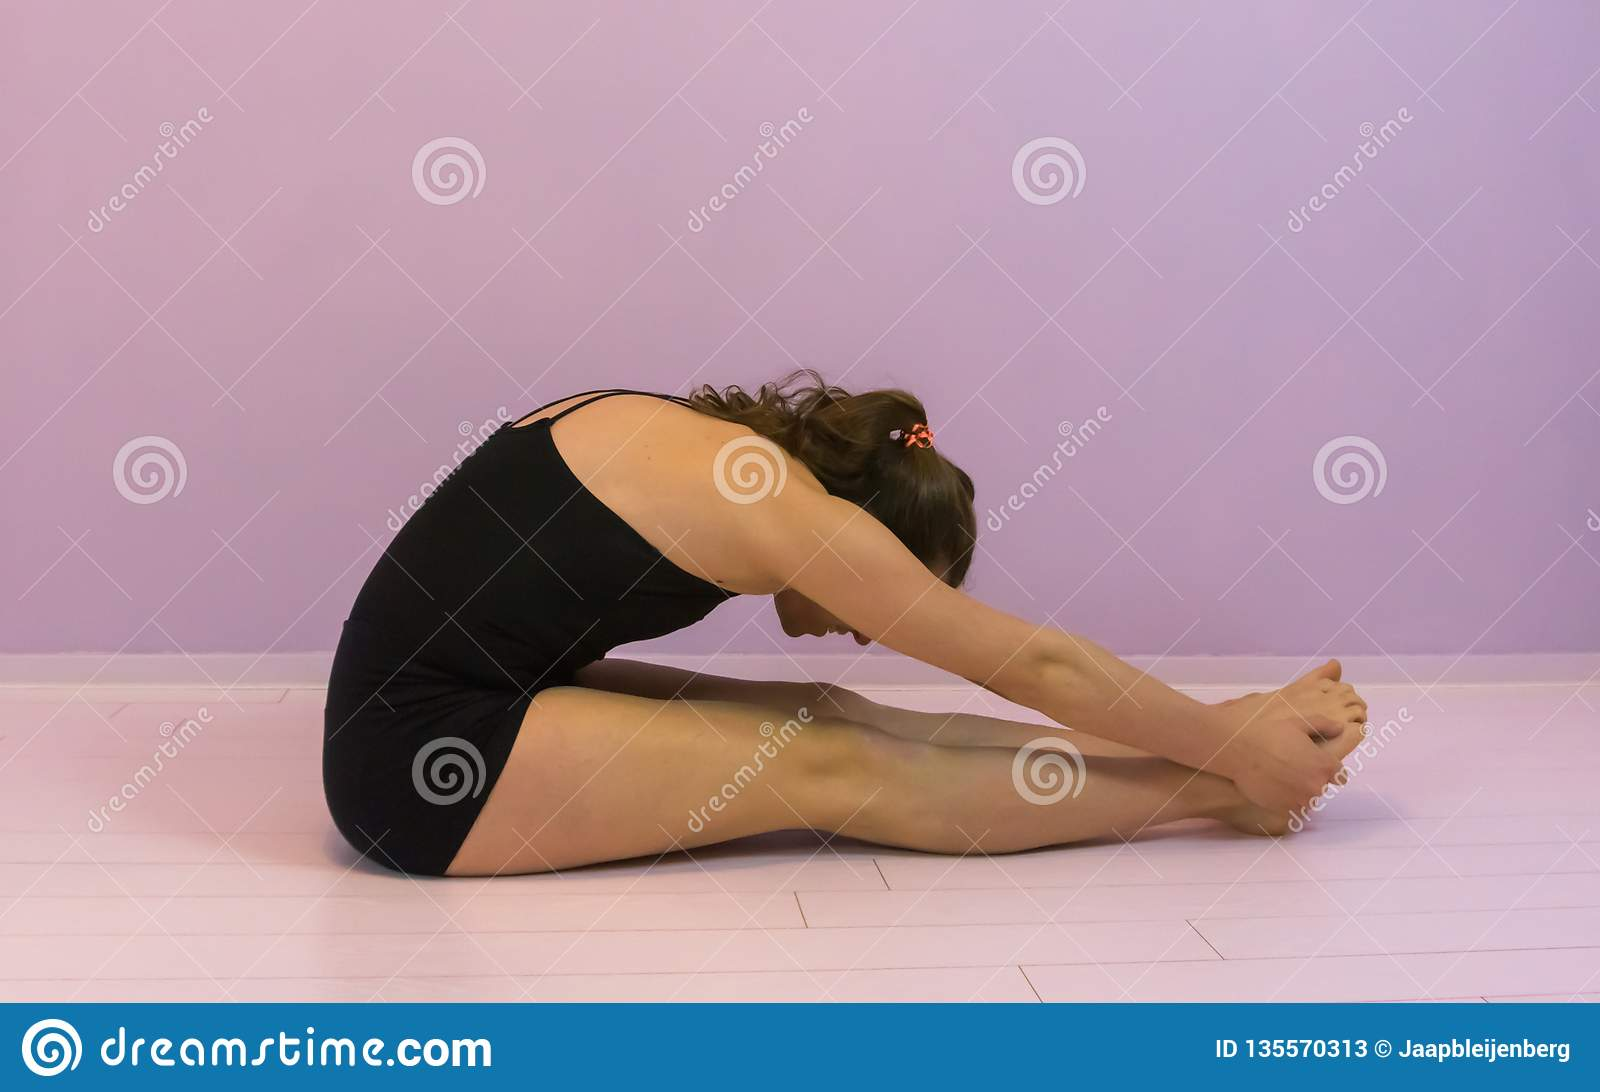 Stretching the calves to train flexibility, sport work out, LGBT young transgender girl working out